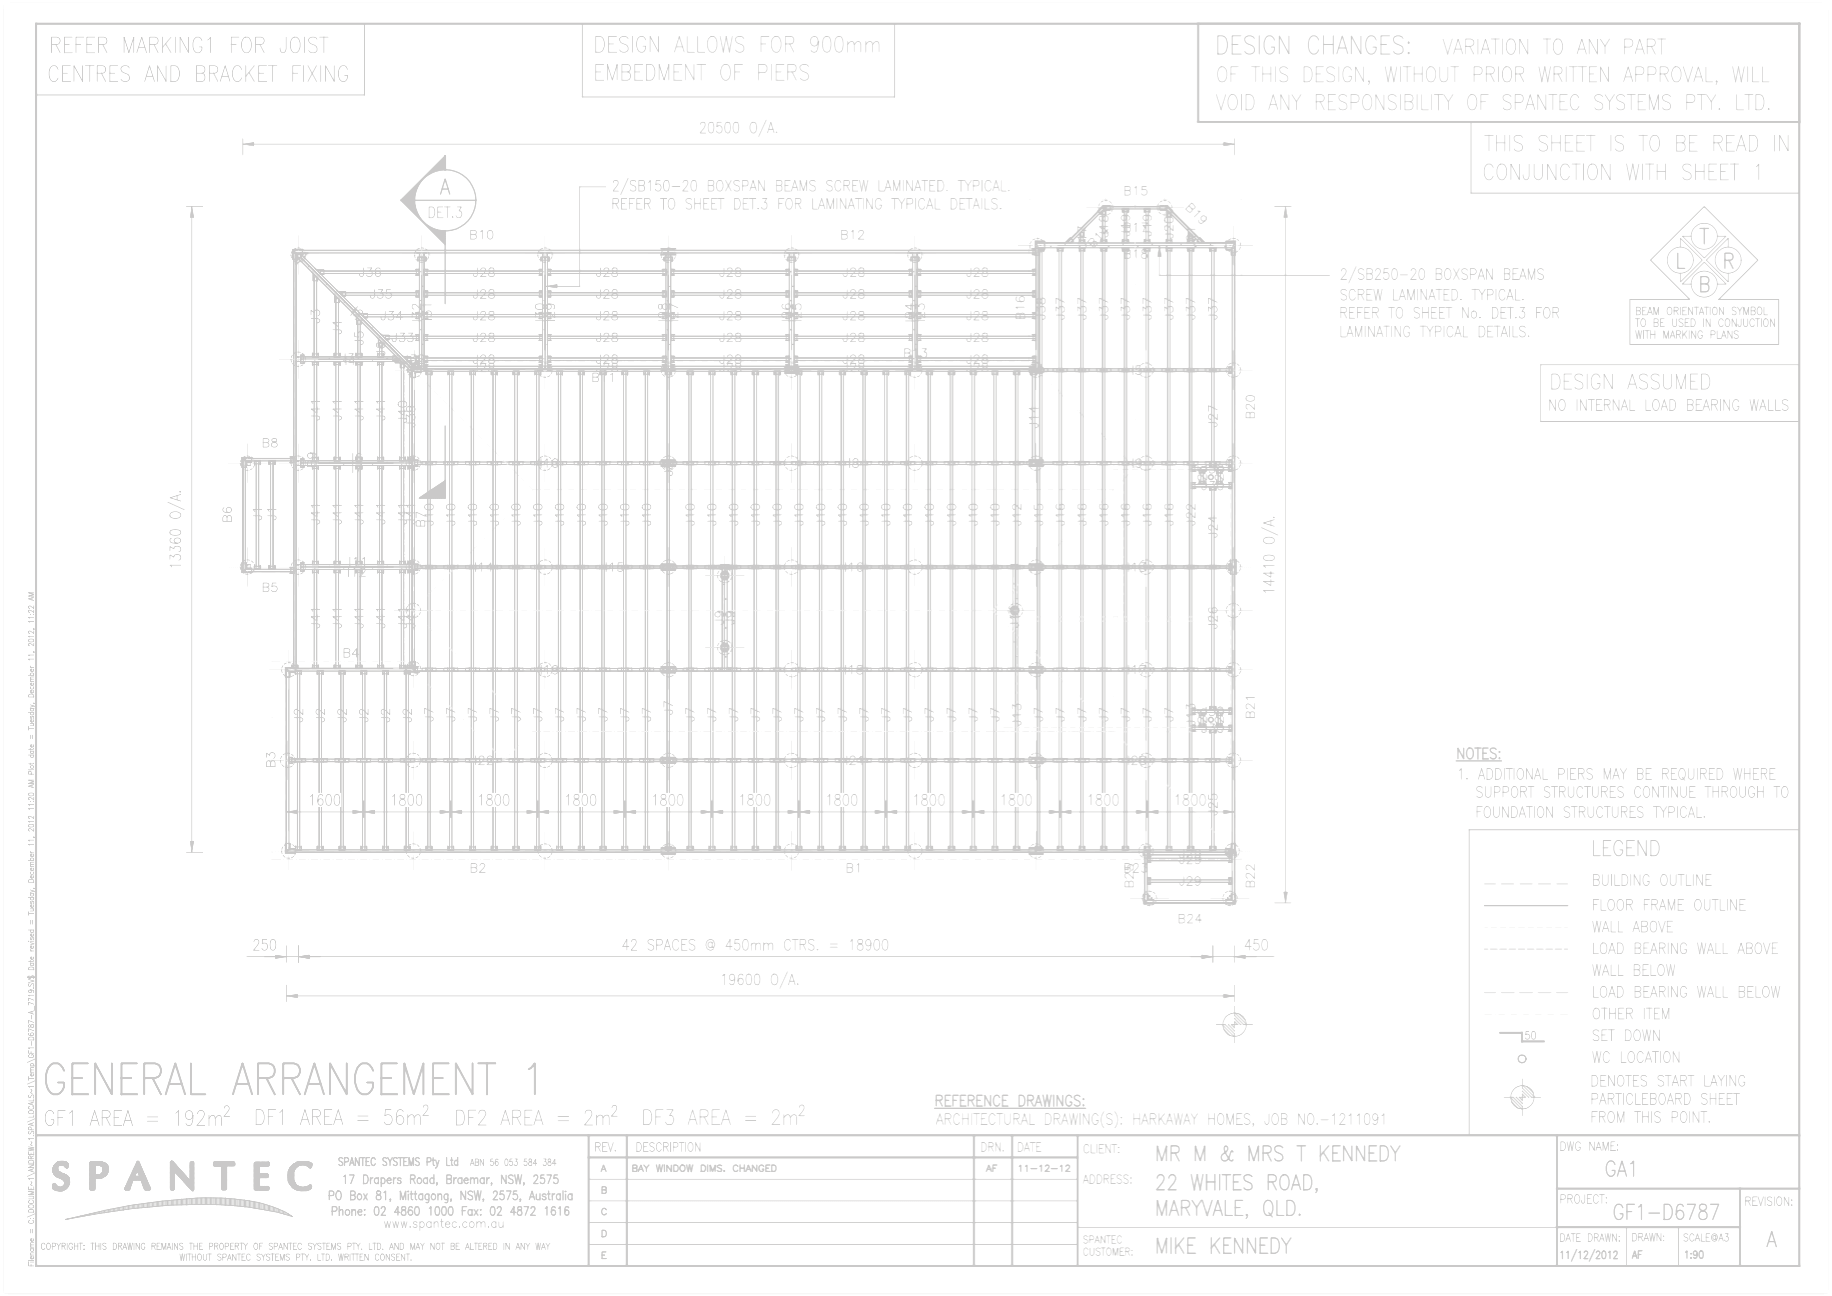 Example of a General Arrangement drawing for residential floor framing